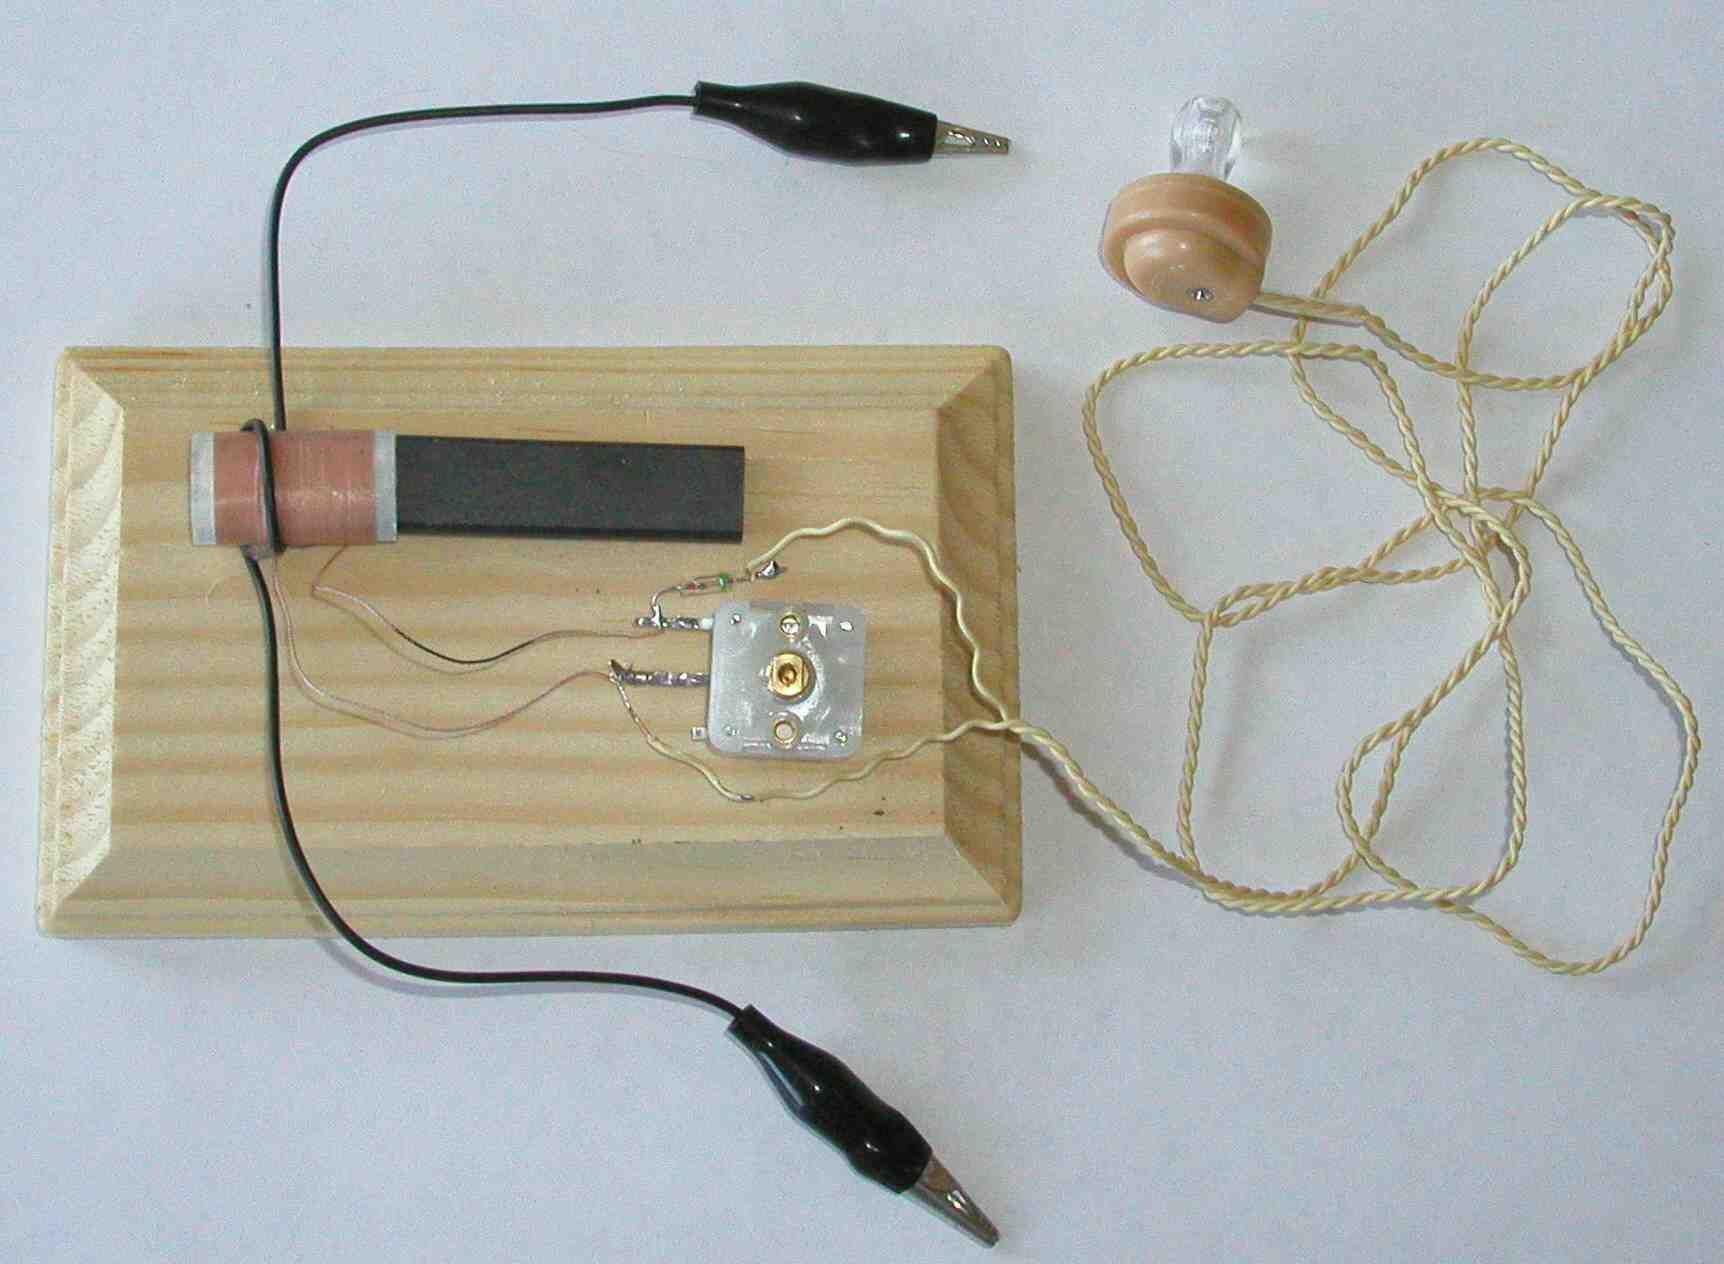 List of top am crystal radio kits images